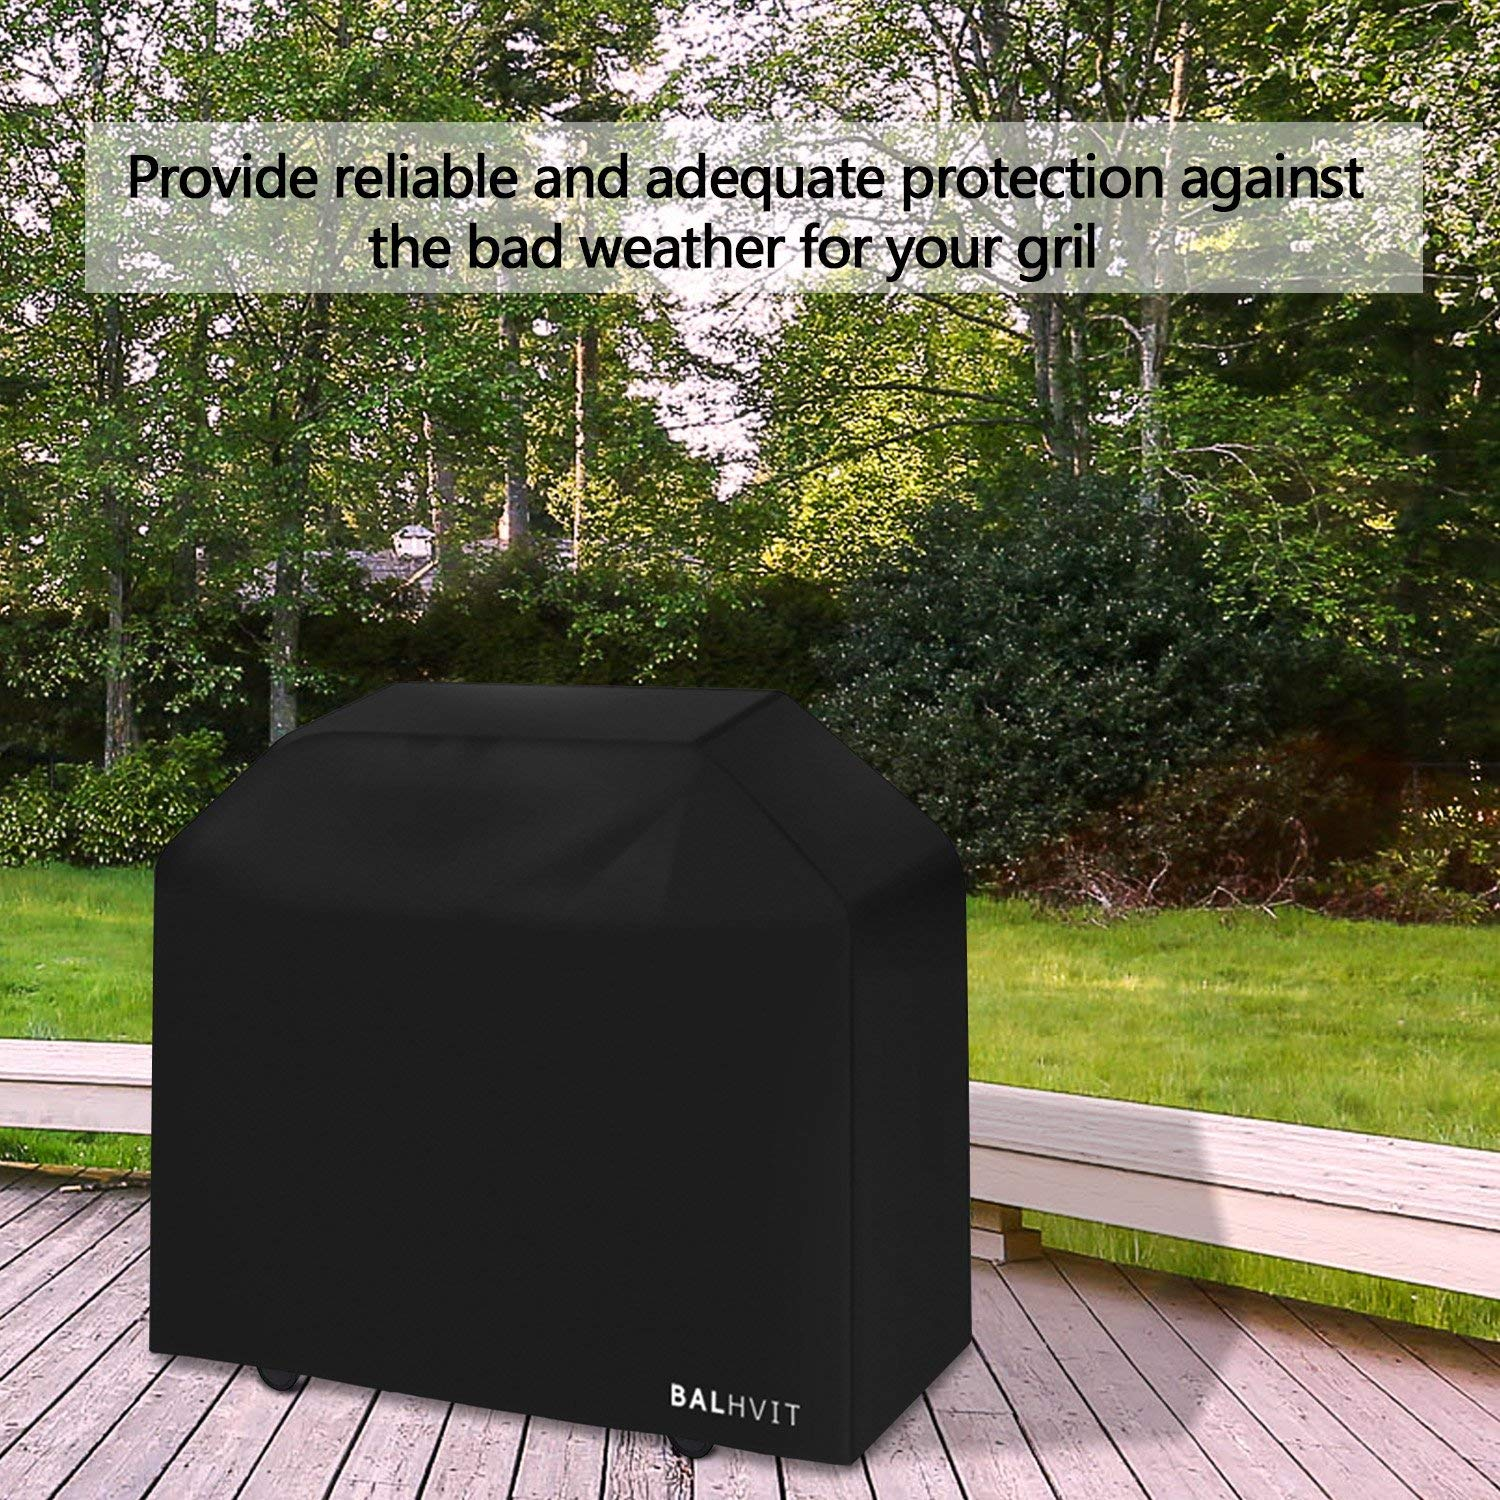 Char Broil L:57 W: 24 H:46 JennAir Brinkmann Anti-UV Rip-resistant Waterproof Gas BBQ Cover Prefect for Weber 210D Oxford Fabric Barbecue Covers Grill Cover